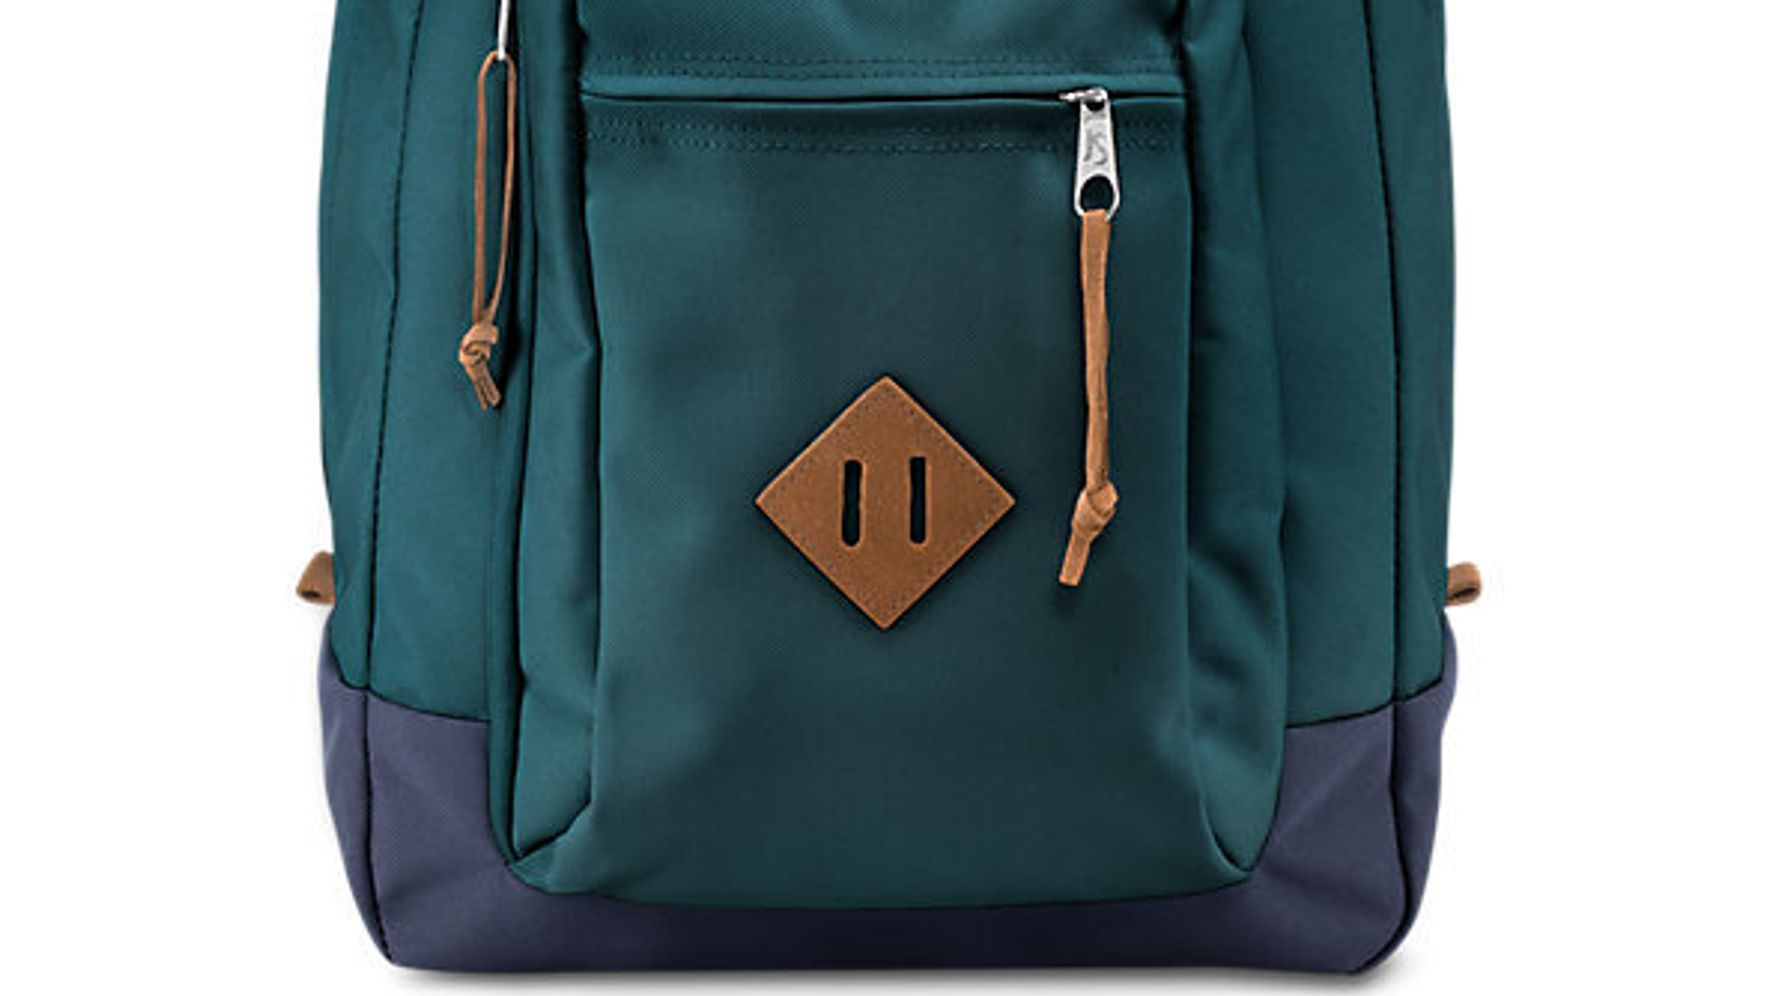 So THAT'S Why There's A Little Diamond Patch On Some Backpacks